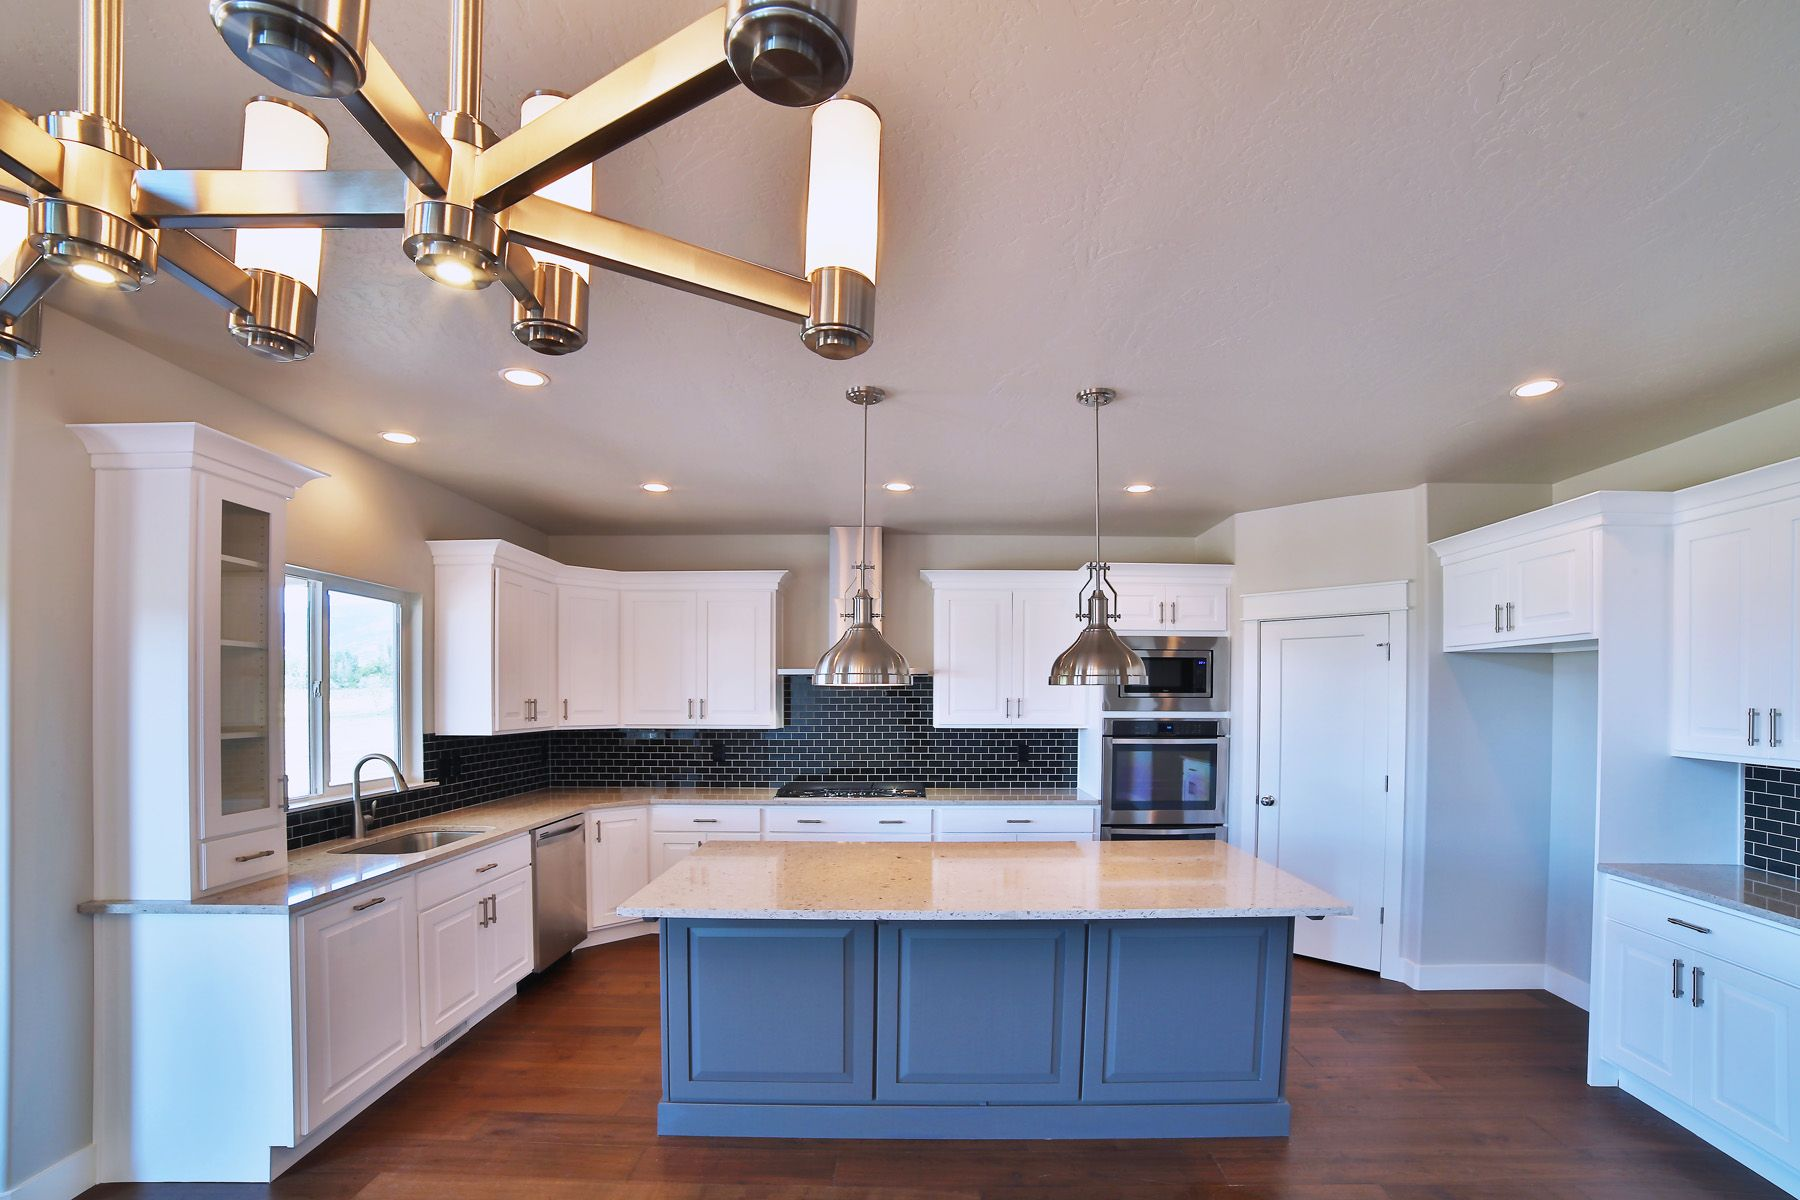 Kitchen In Harmony Xl Home Design By Symphony Homes